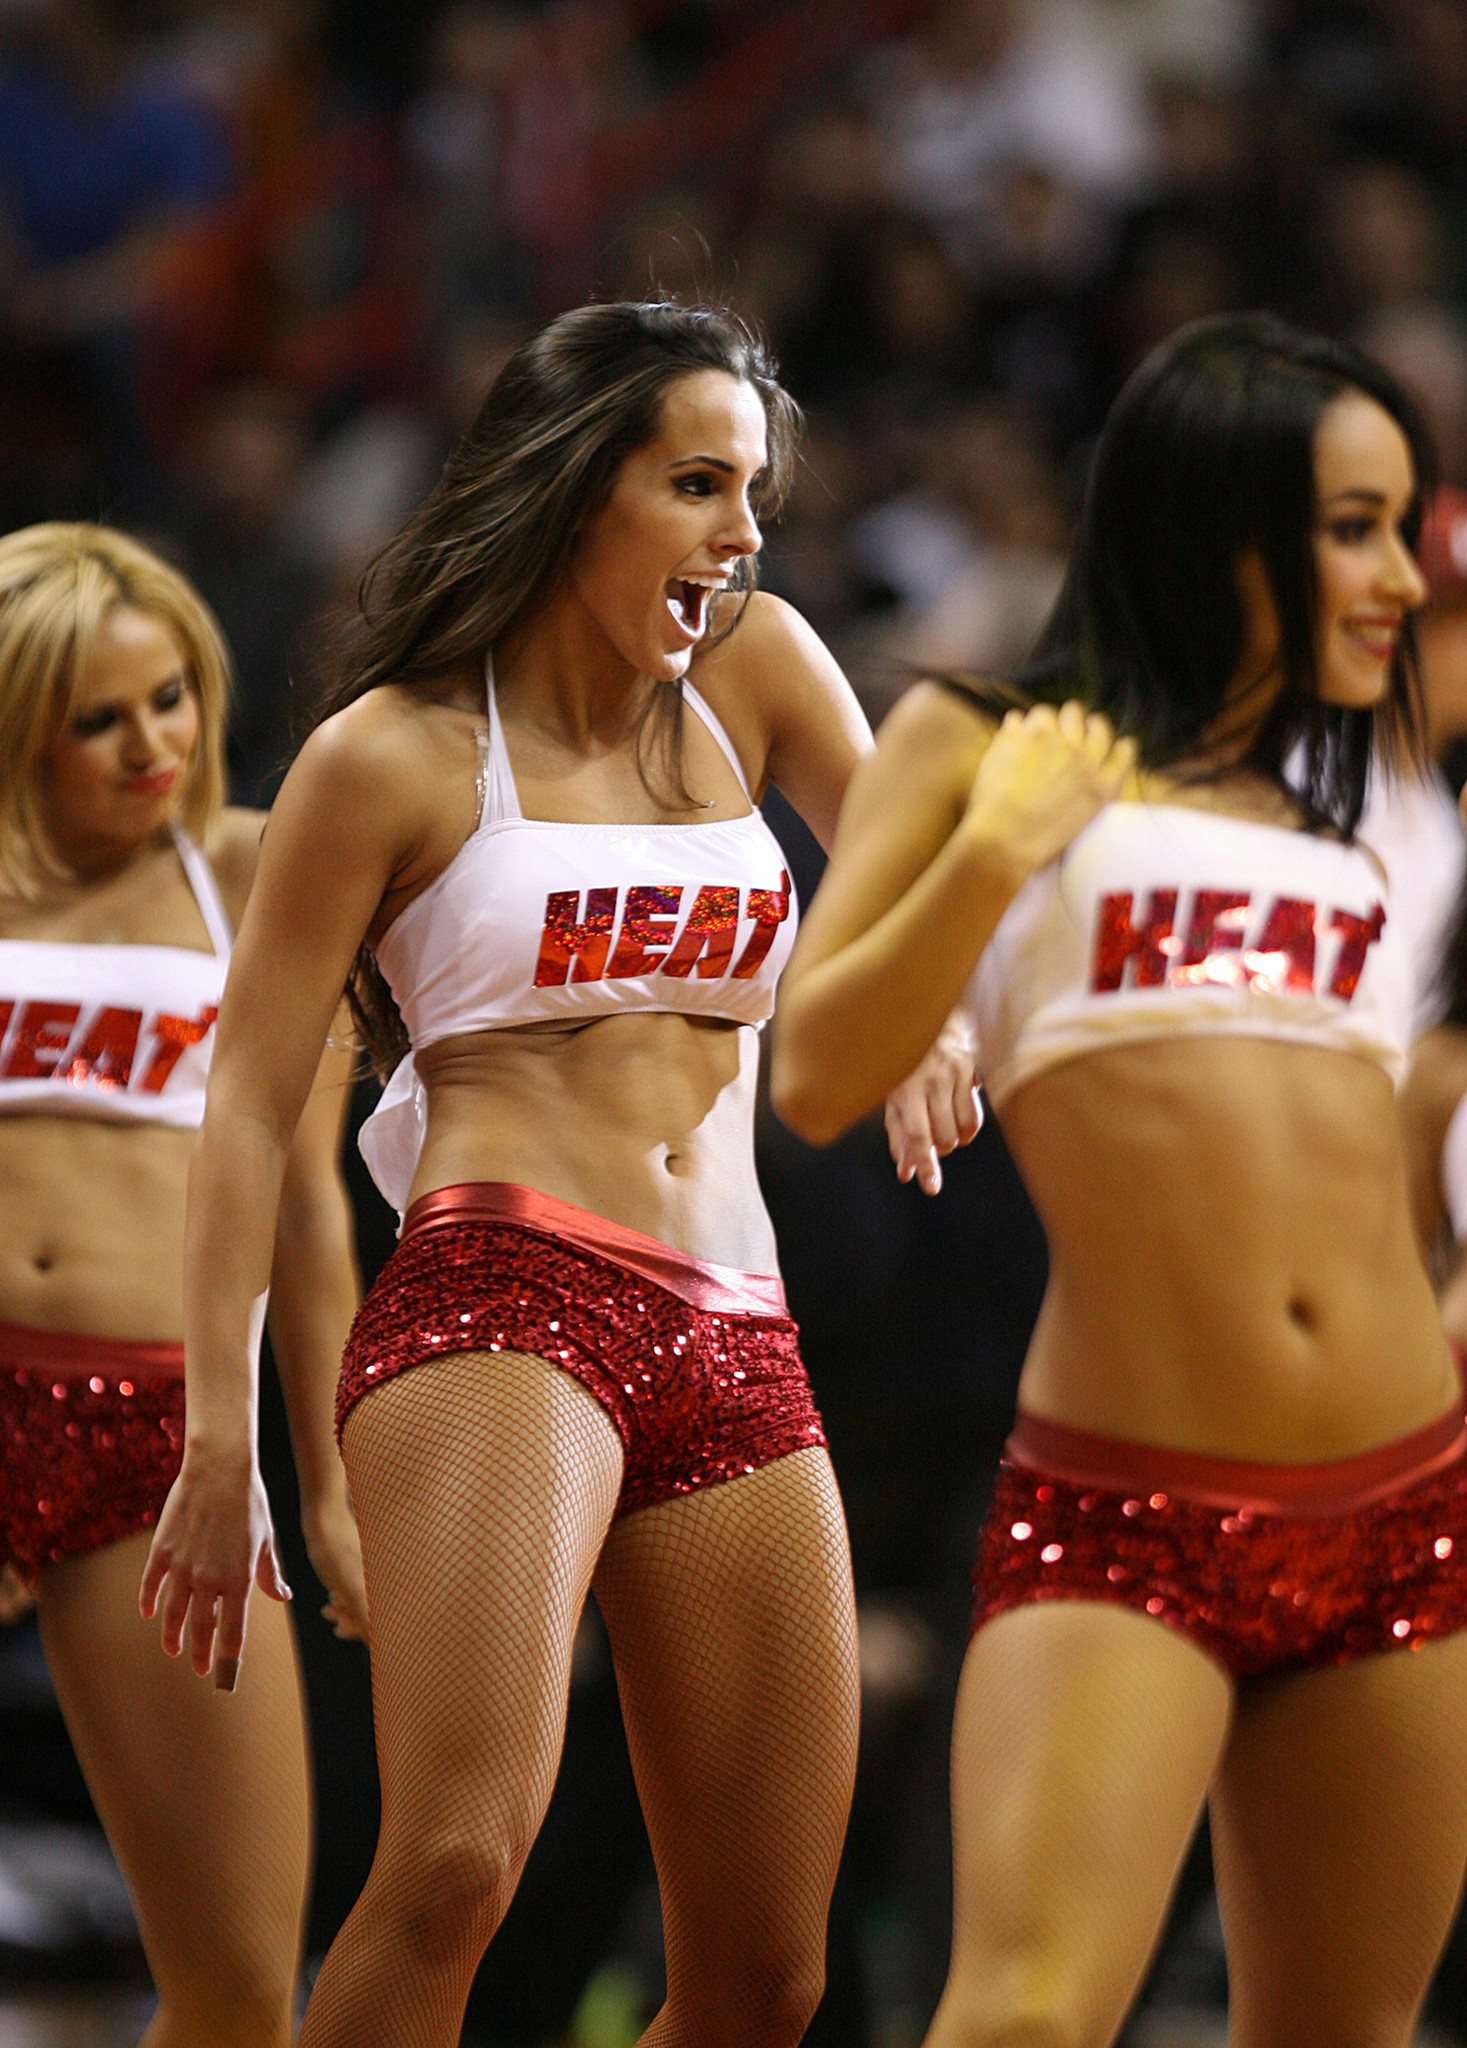 Photos: Miami Heat Dancers in action - Bulls v Heat